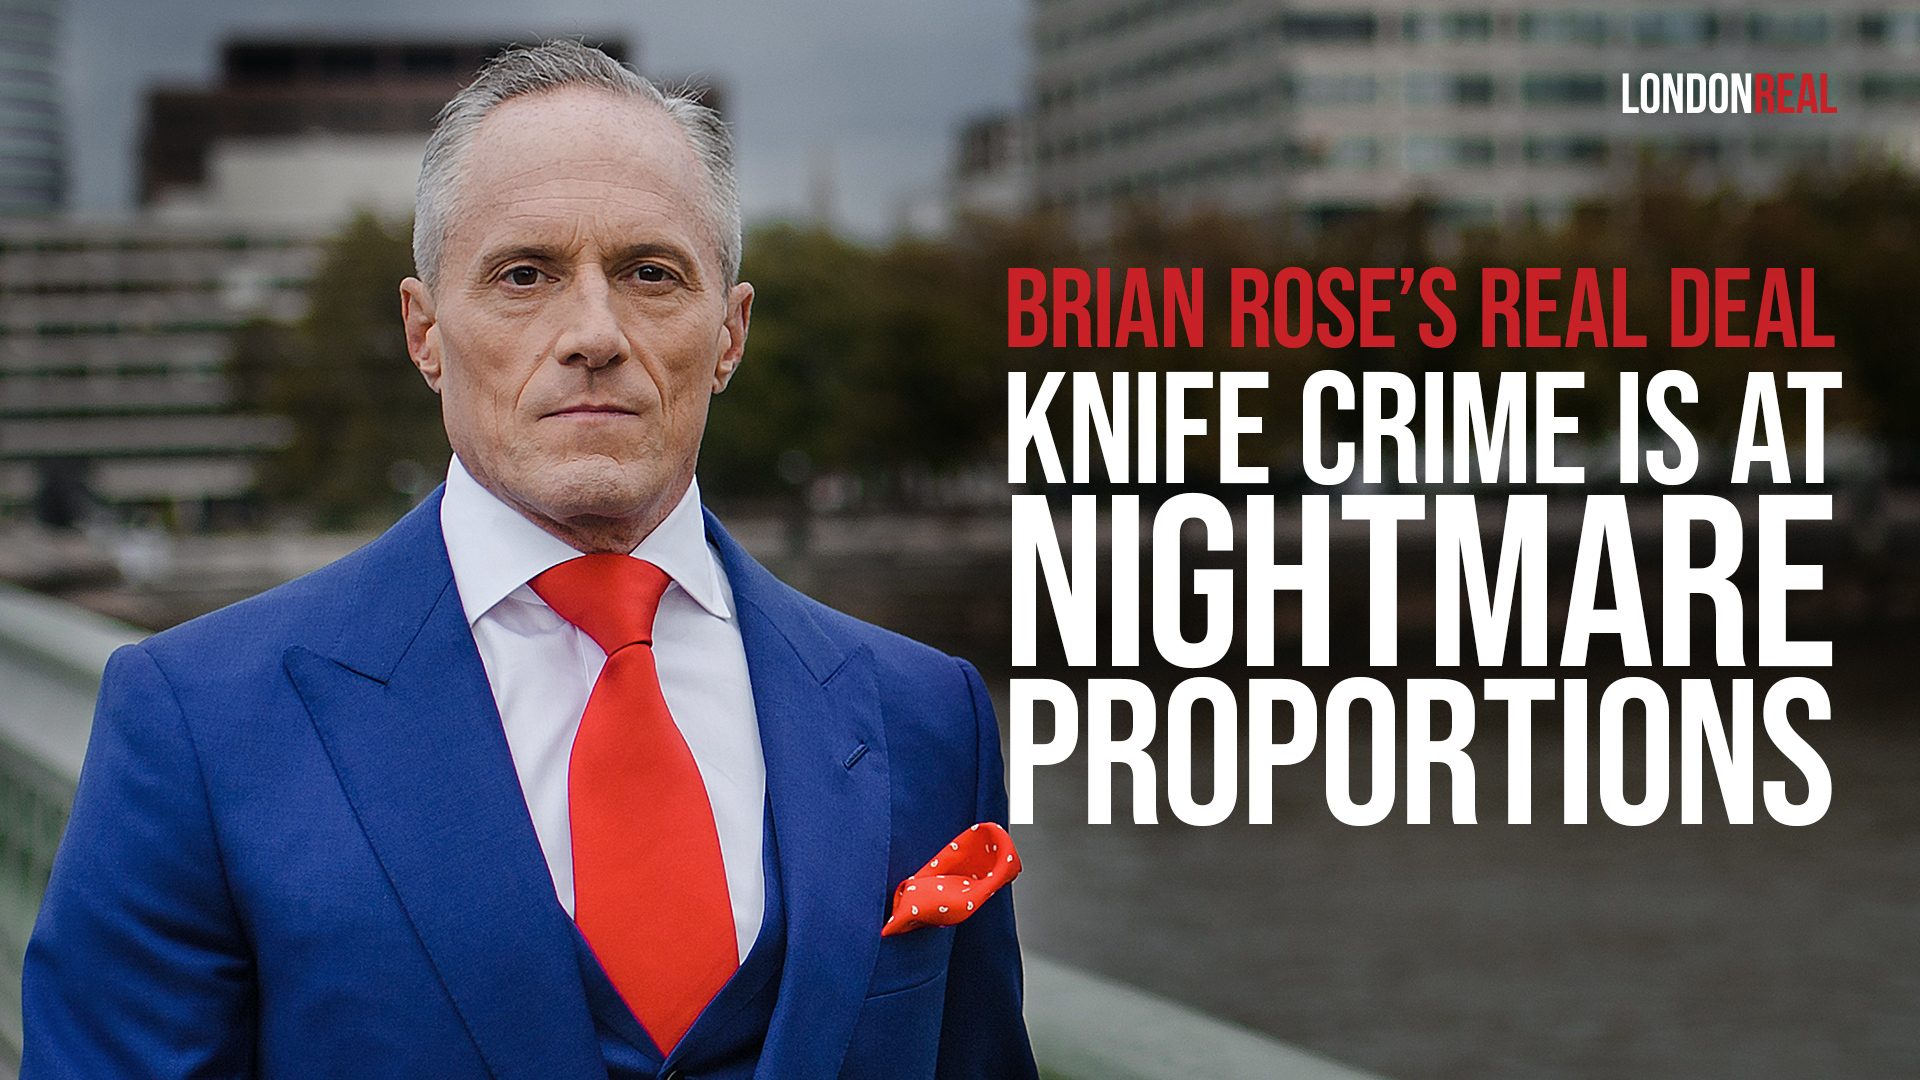 Brian Rose's Real Deal - 100th Teenager Killed During London Mayor's Term - Knife Crime Is At Nightmare Proportions